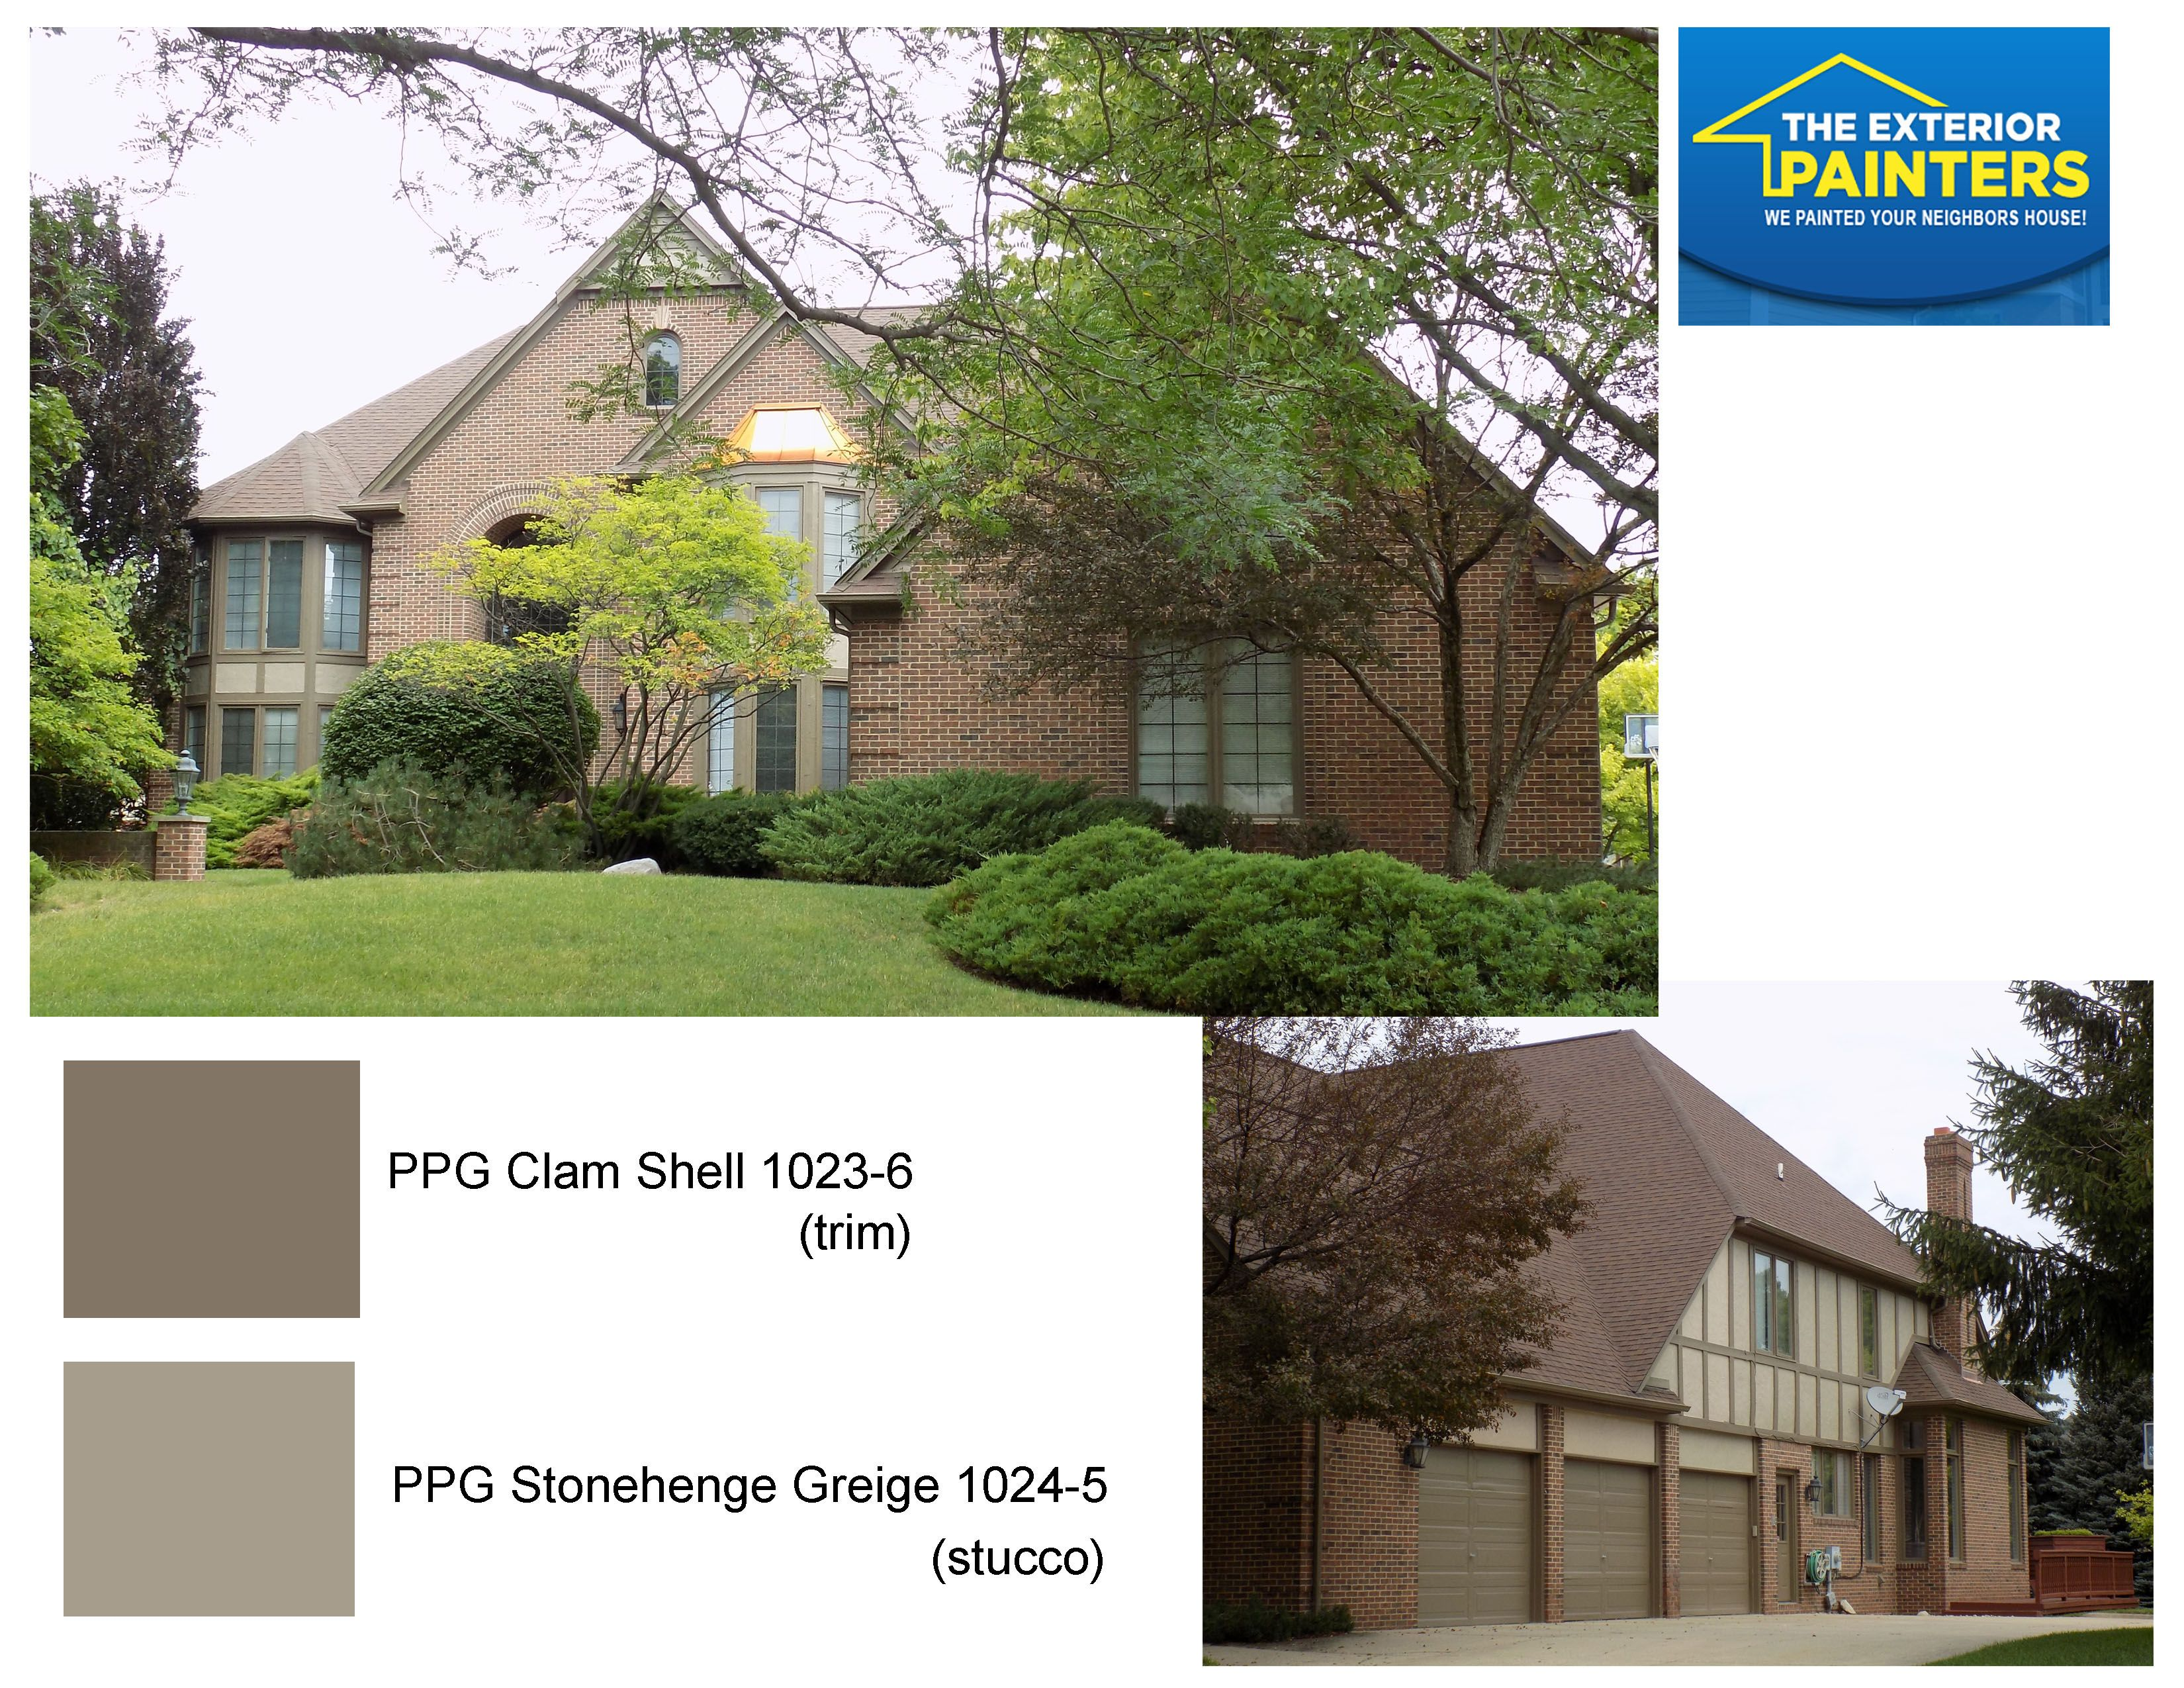 Brand new PPG 1023-6 Clam Shell for the trim and PPG 1024-5 Stonehenge  OJ14